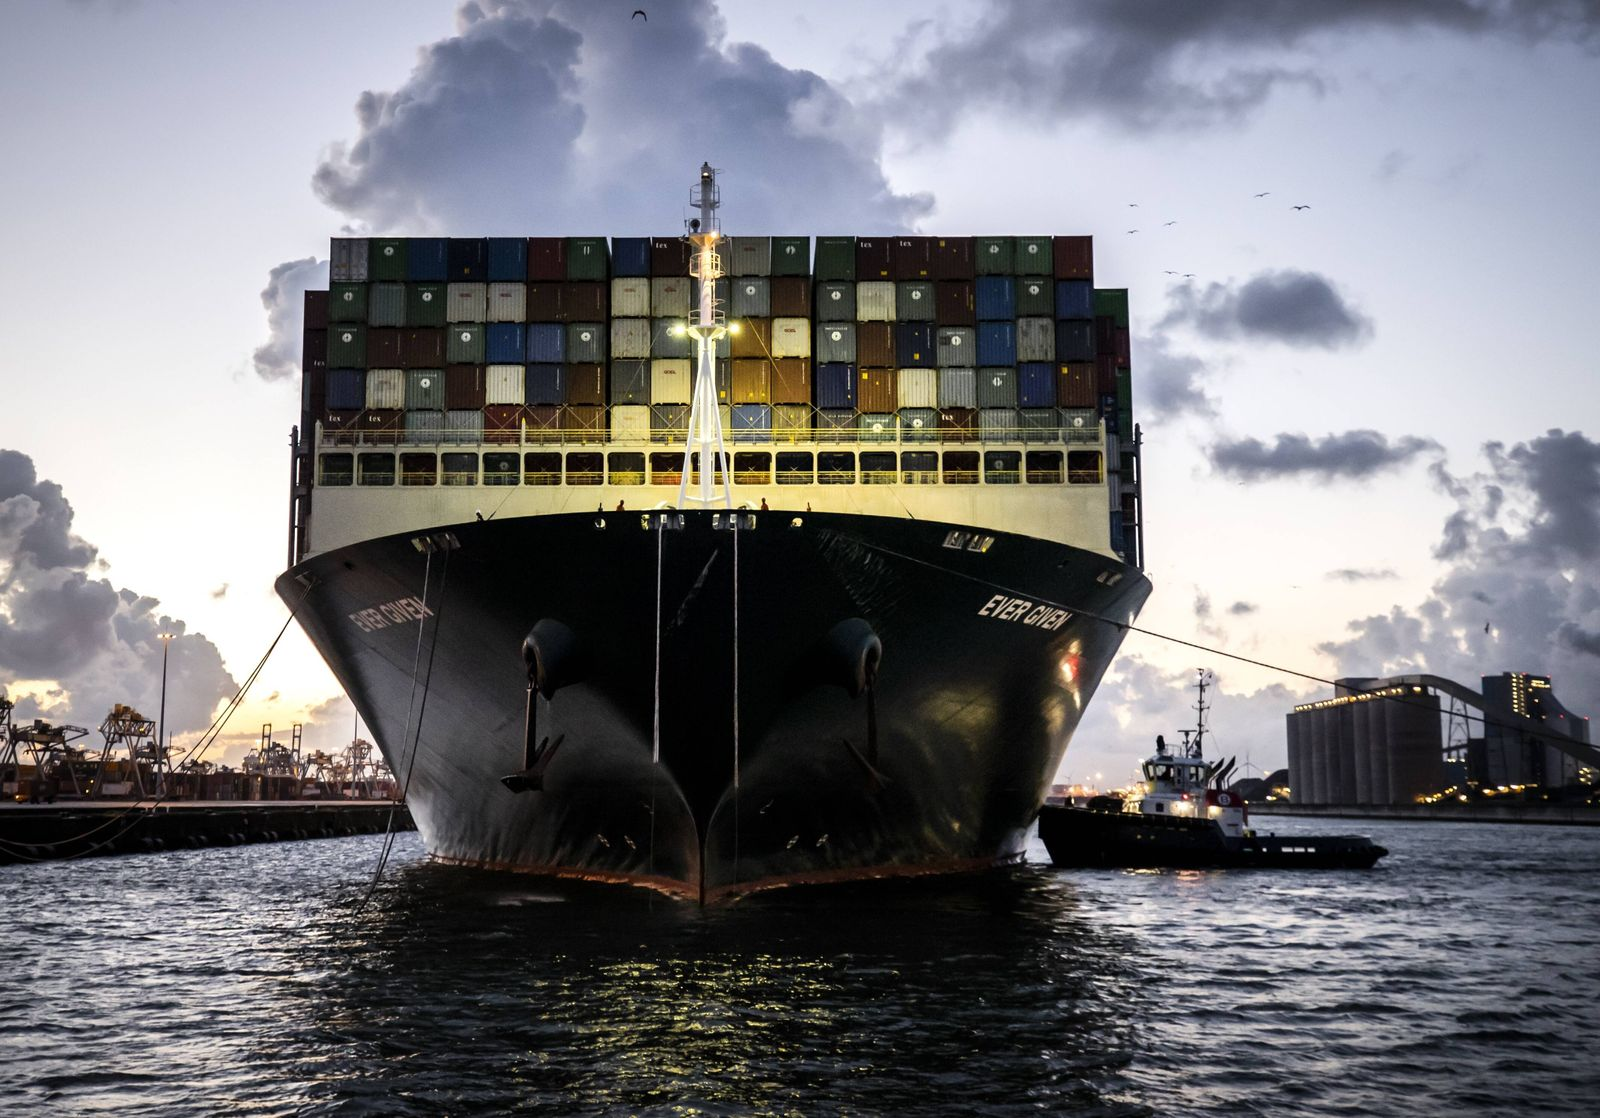 ROTTERDAM - The container ship Ever Given arrives at the ECT Delta terminal in the port of Rotterdam. The ship that bloc